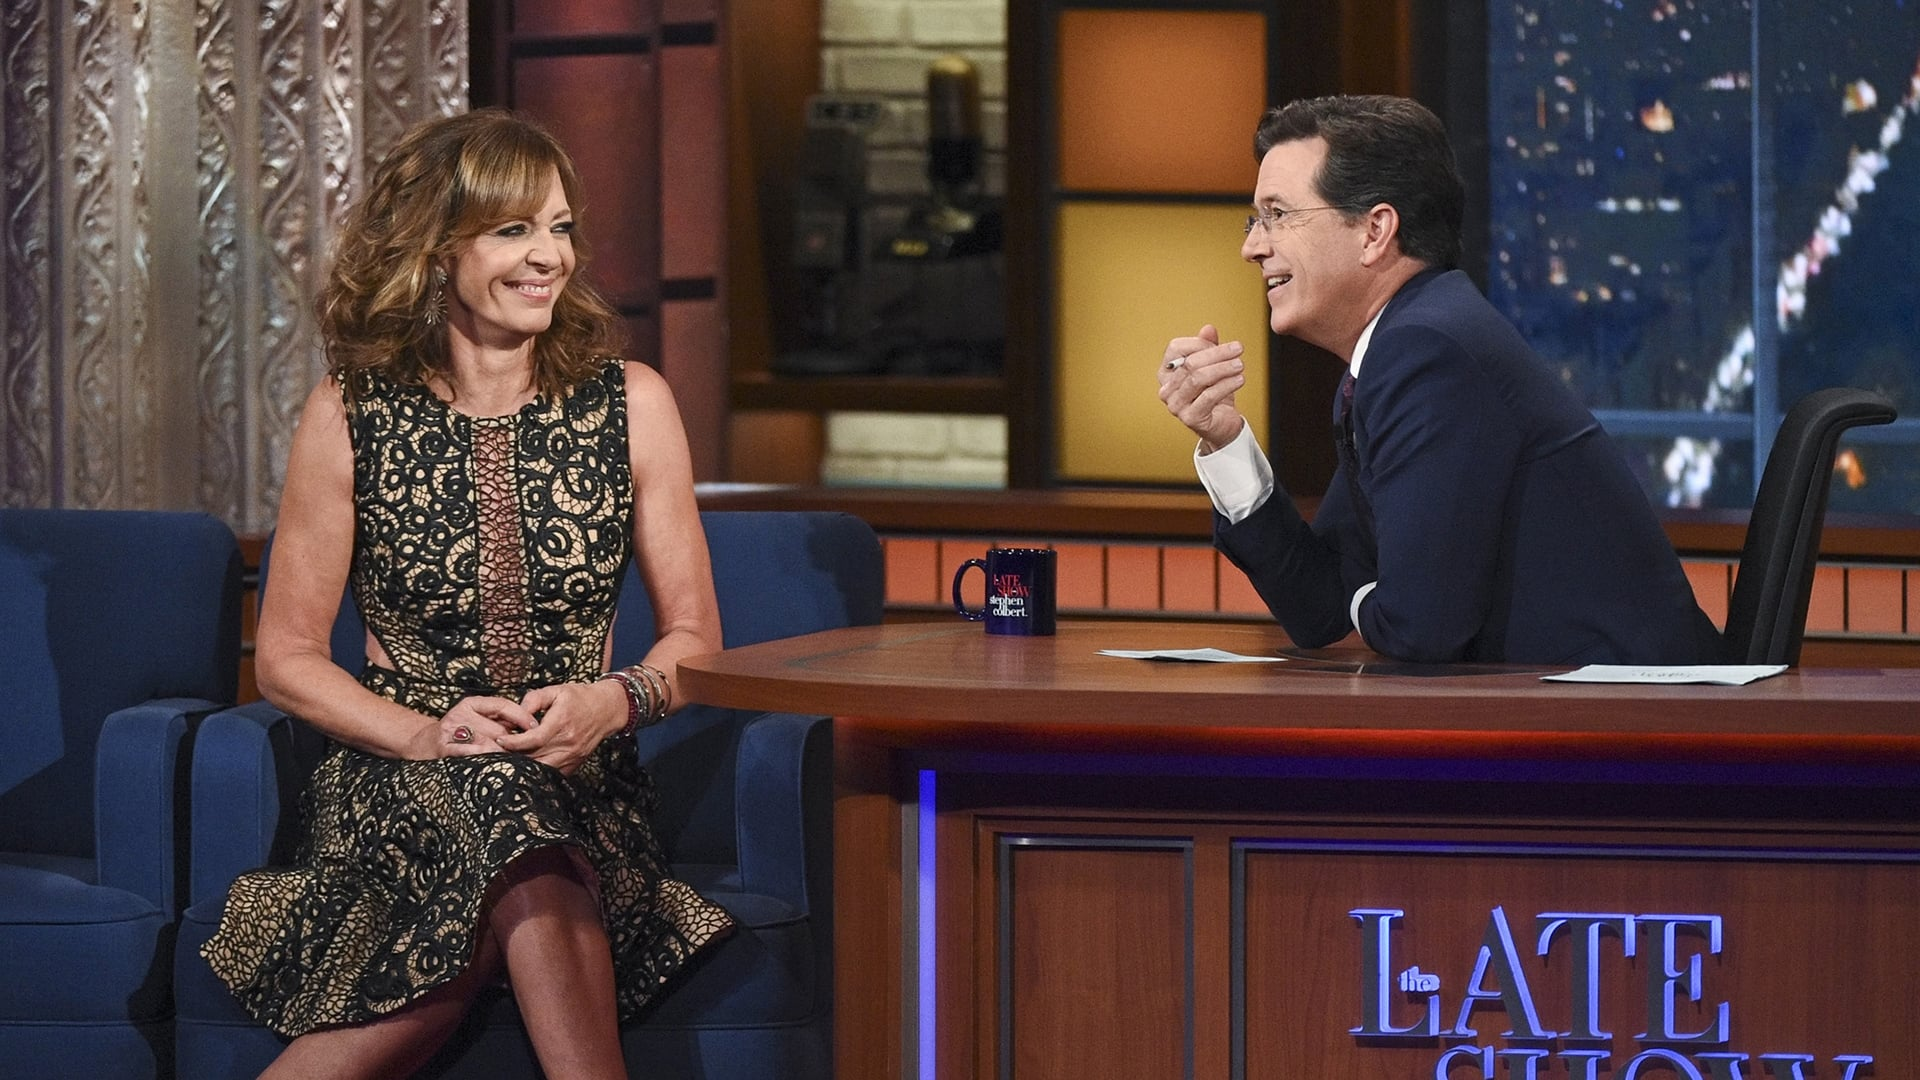 The Late Show with Stephen Colbert Season 1 :Episode 35  Allison Janney, Colin Quinn, Margaret Cho